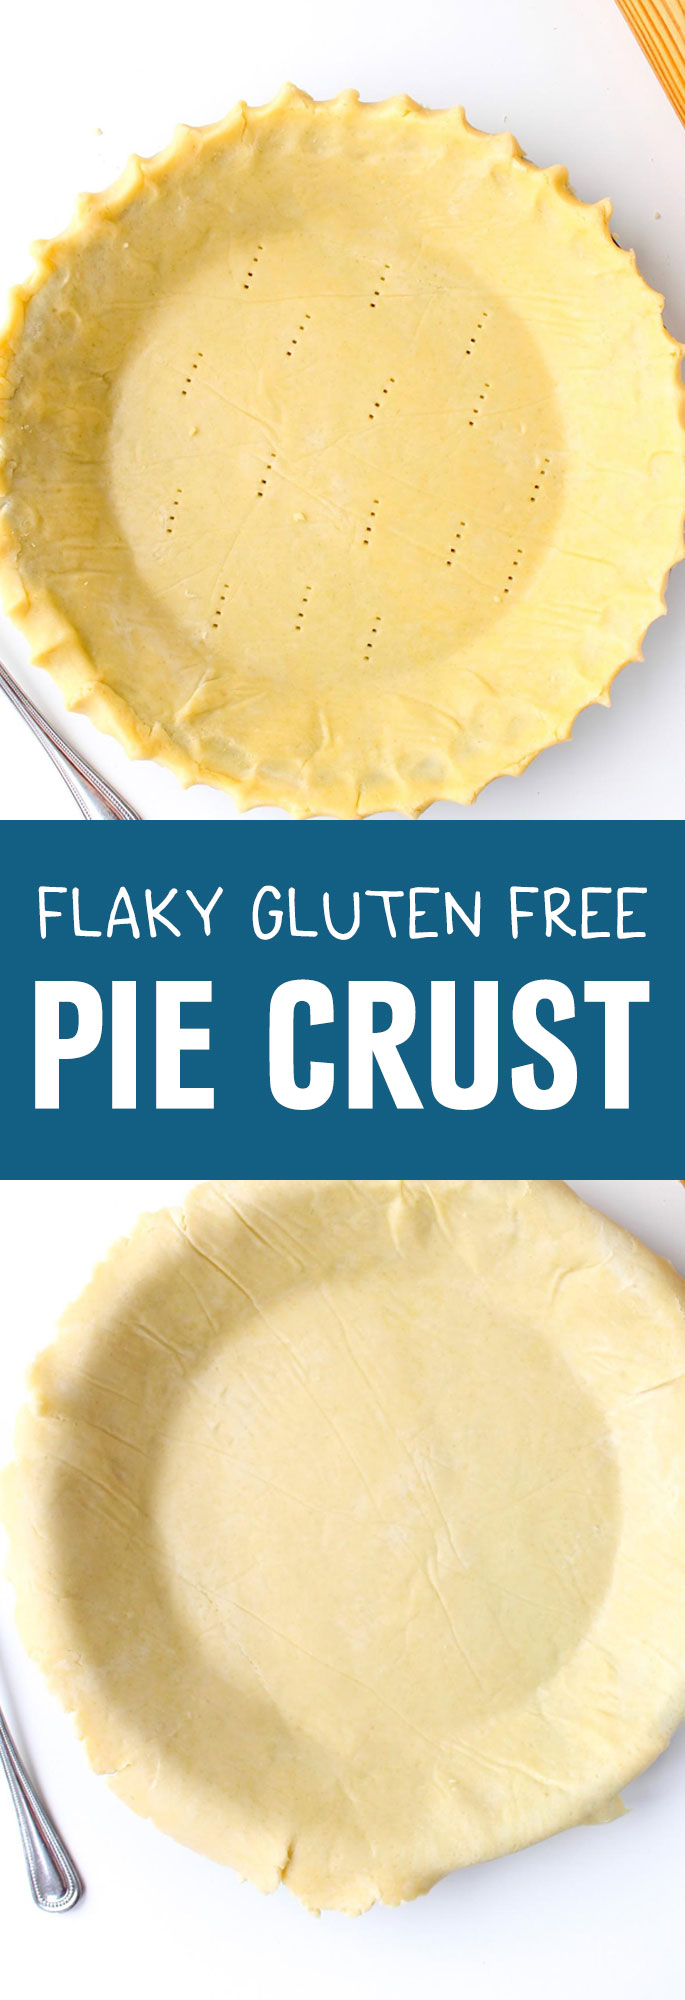 Make a perfect and delicious pie crust for both sweet and savory recipes. Shared via http://www.gluteninsight.com